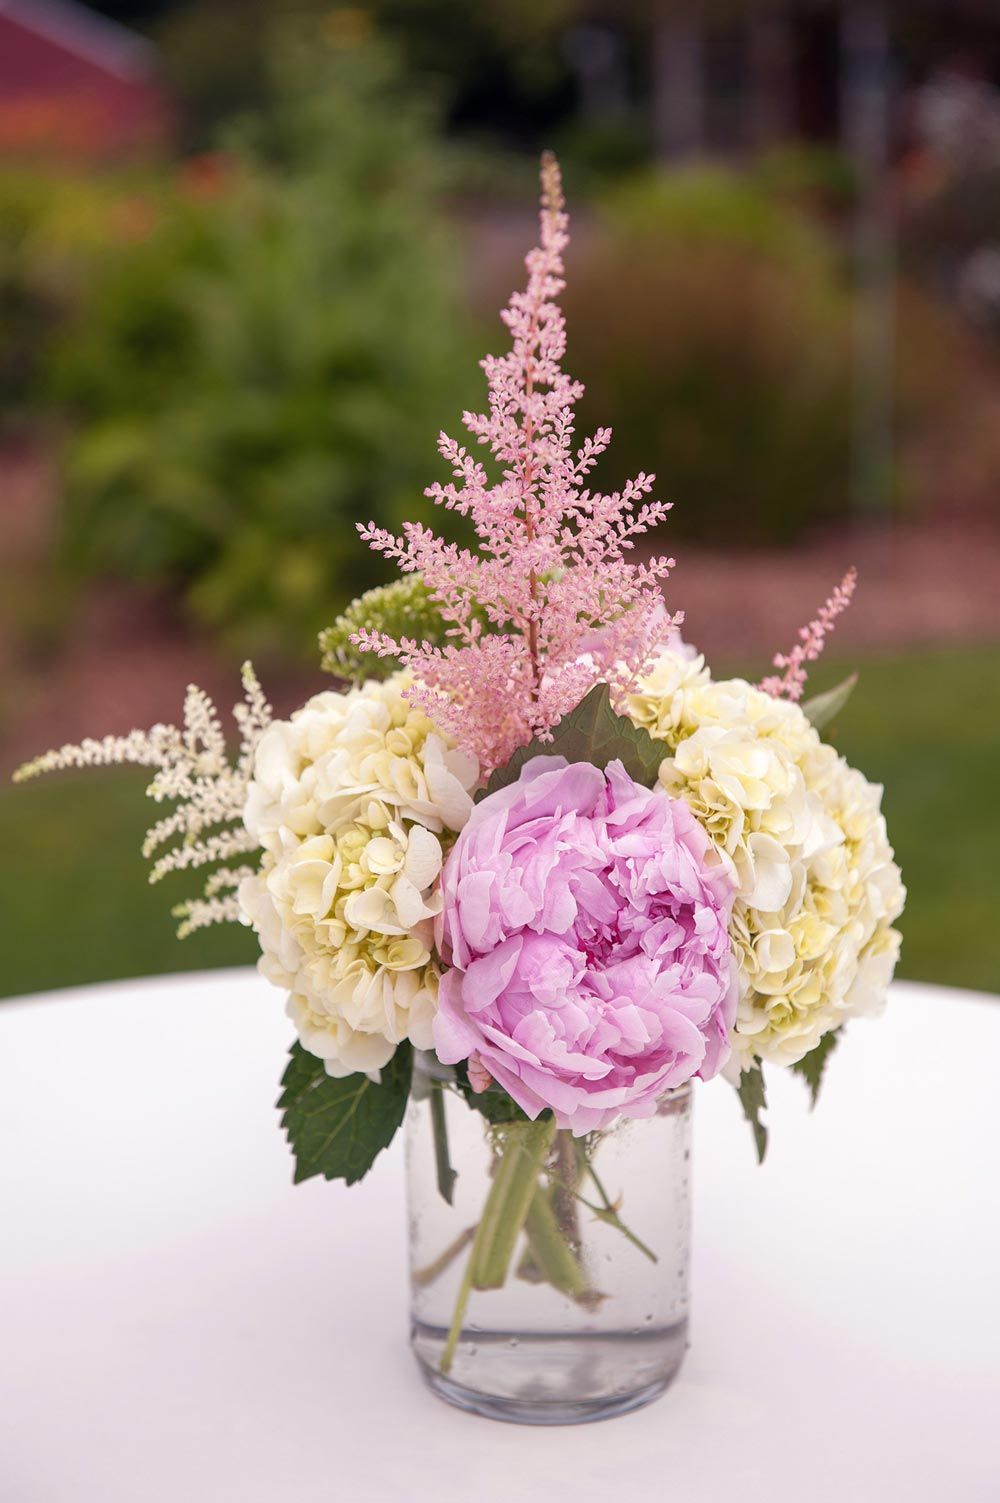 September Wedding Flowers: What\'s in Season | Wedding centerpieces ...